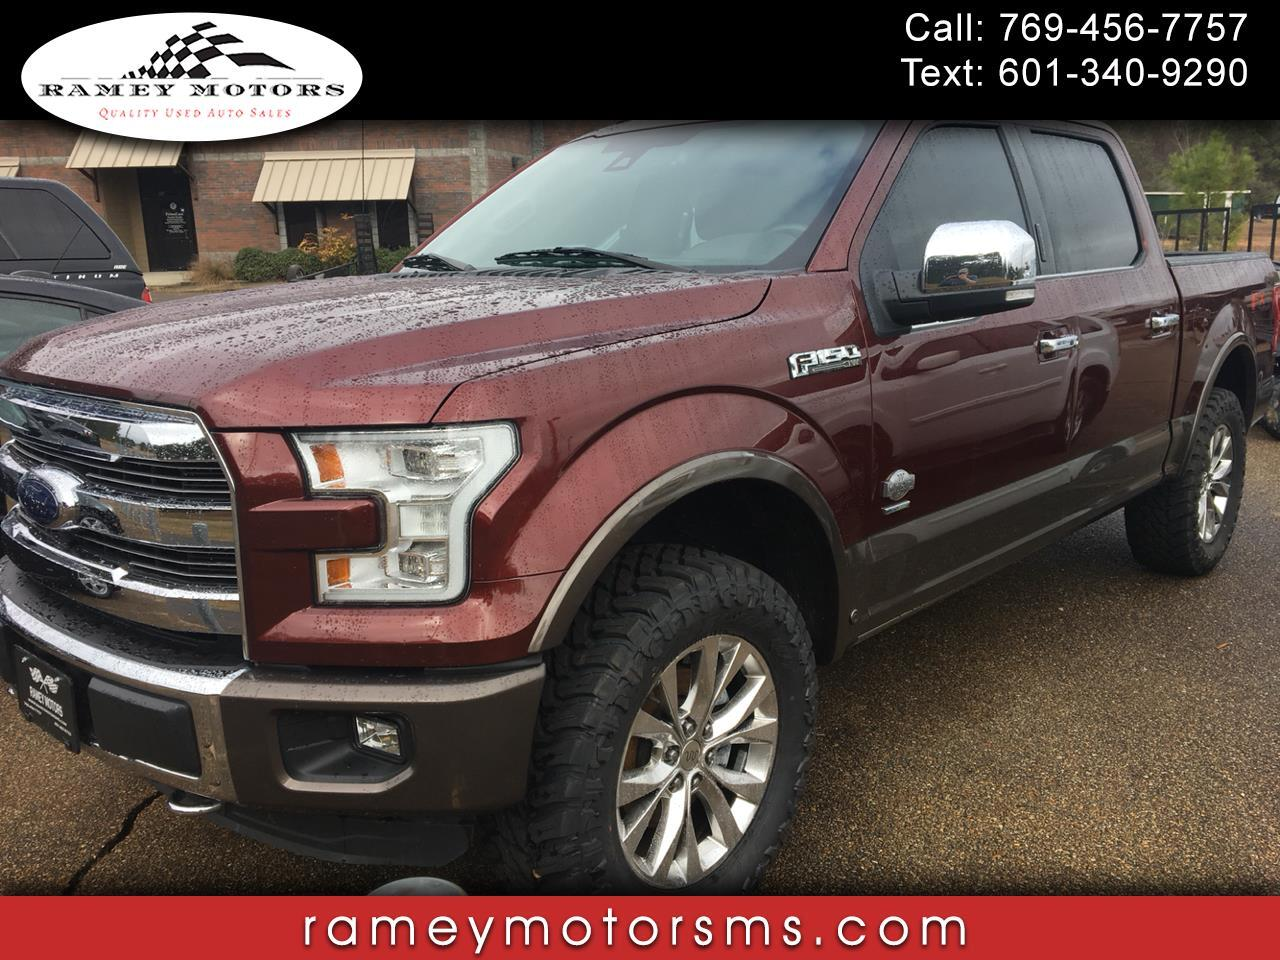 2016 Ford F-150 4WD CREWCAB KING RANCH